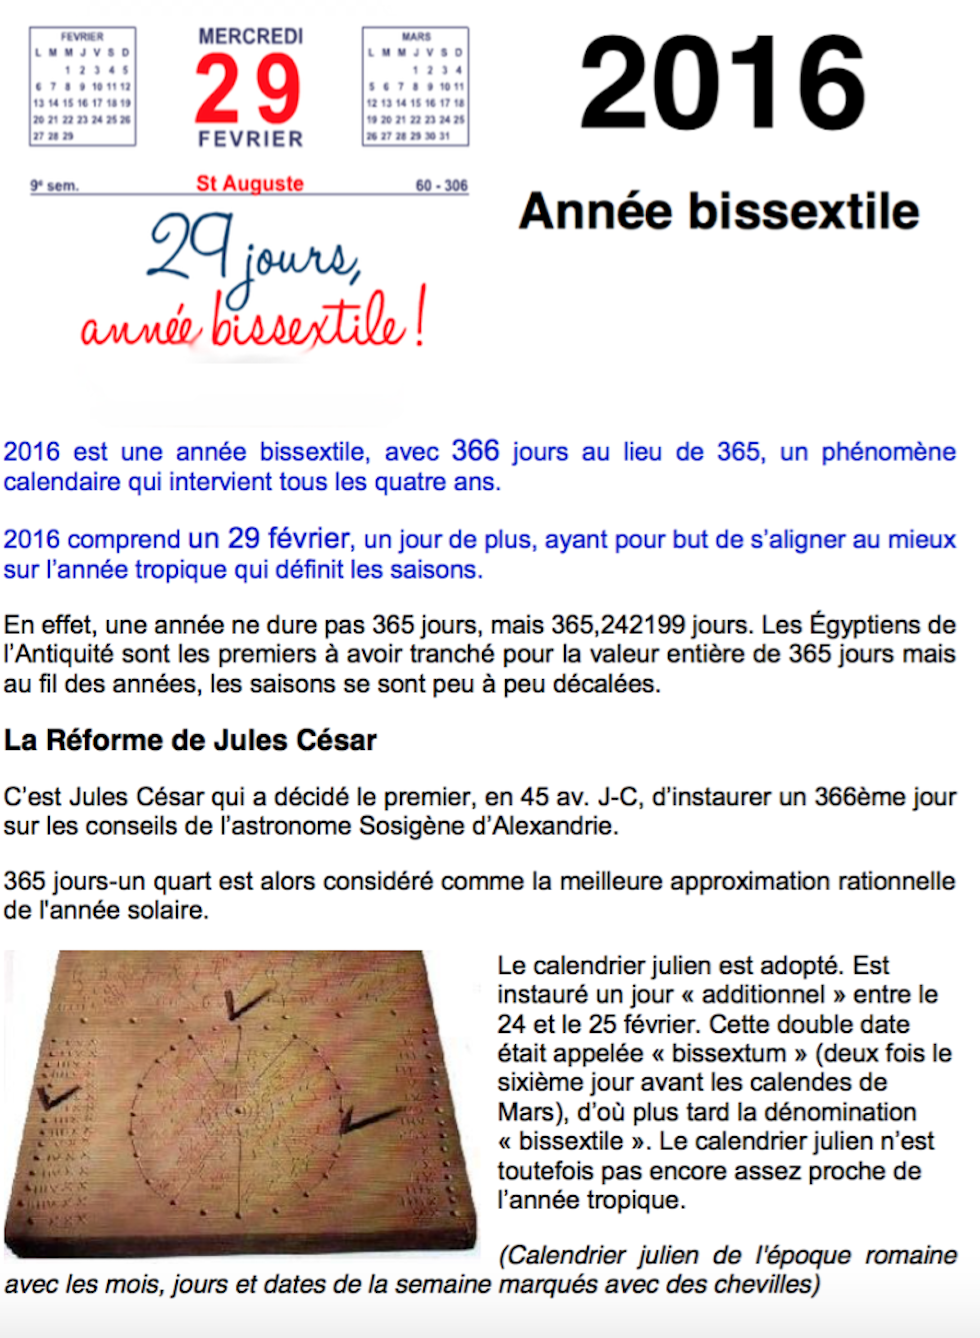 annee bissectile